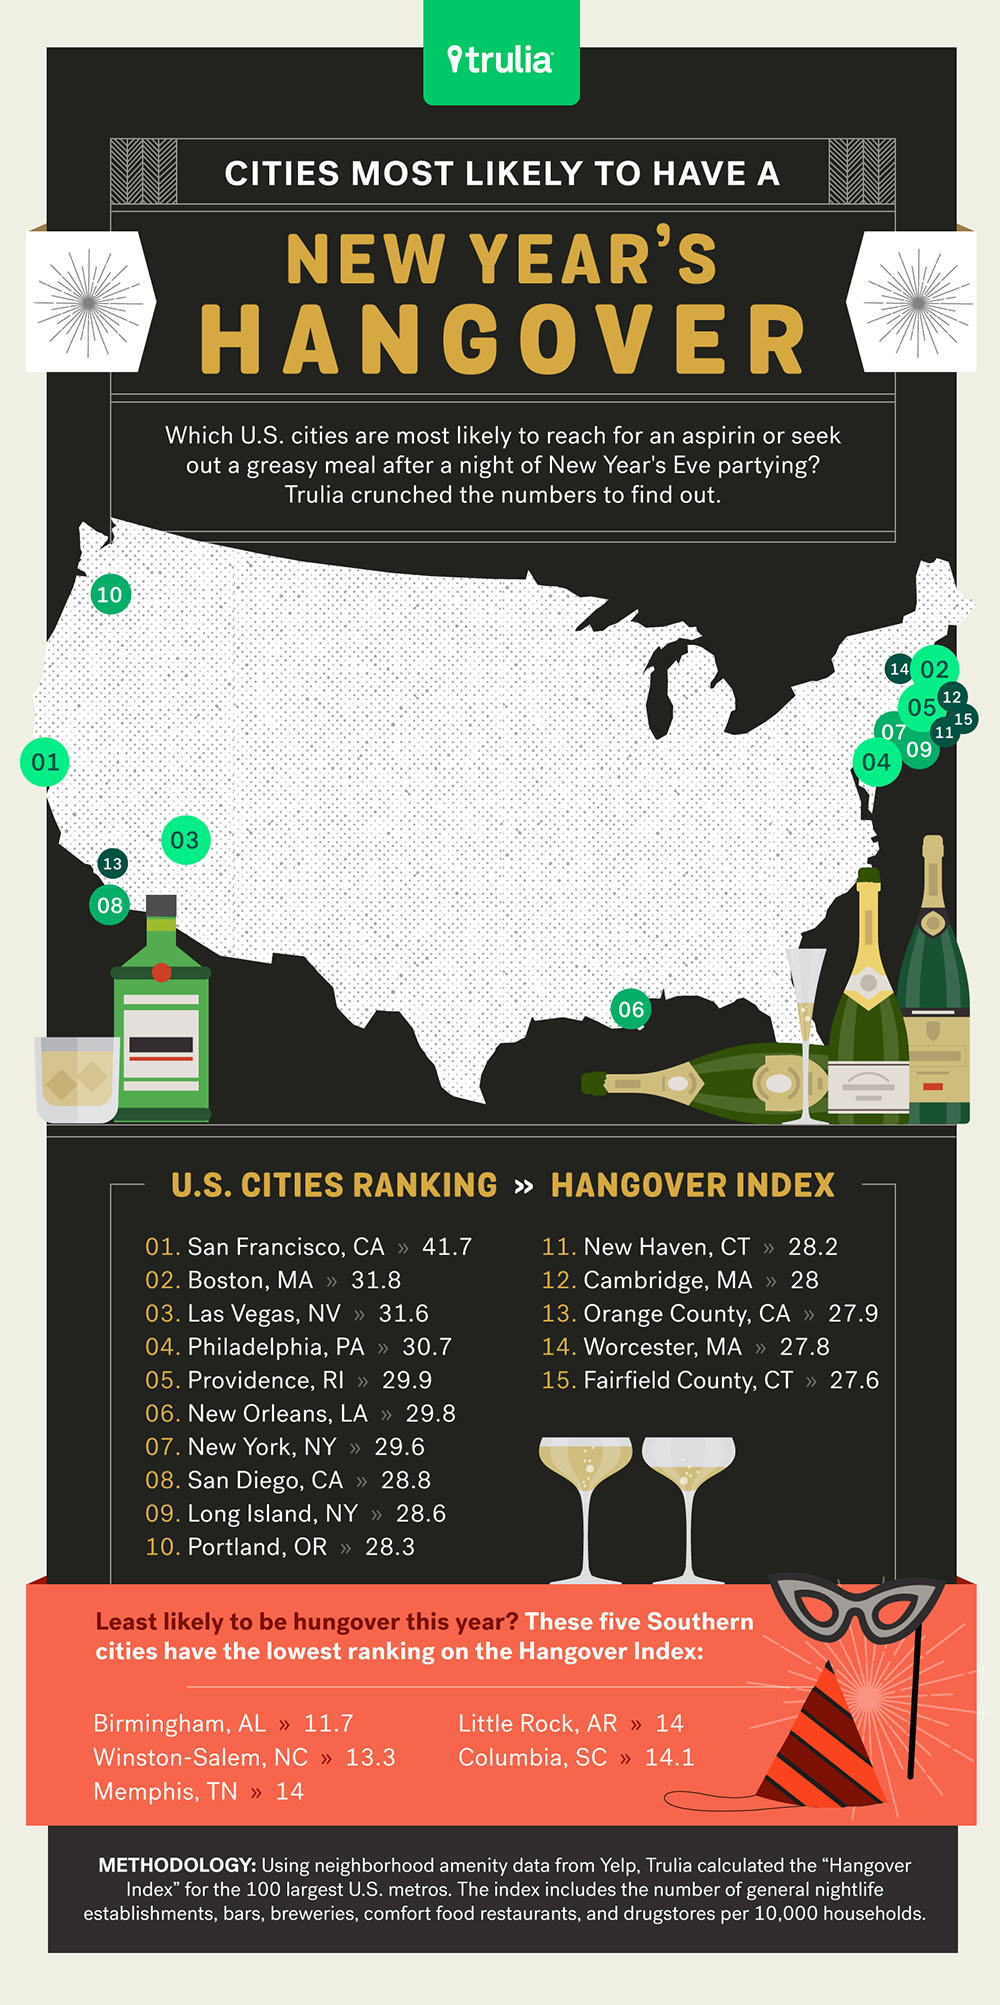 The most hungover cities on New Years